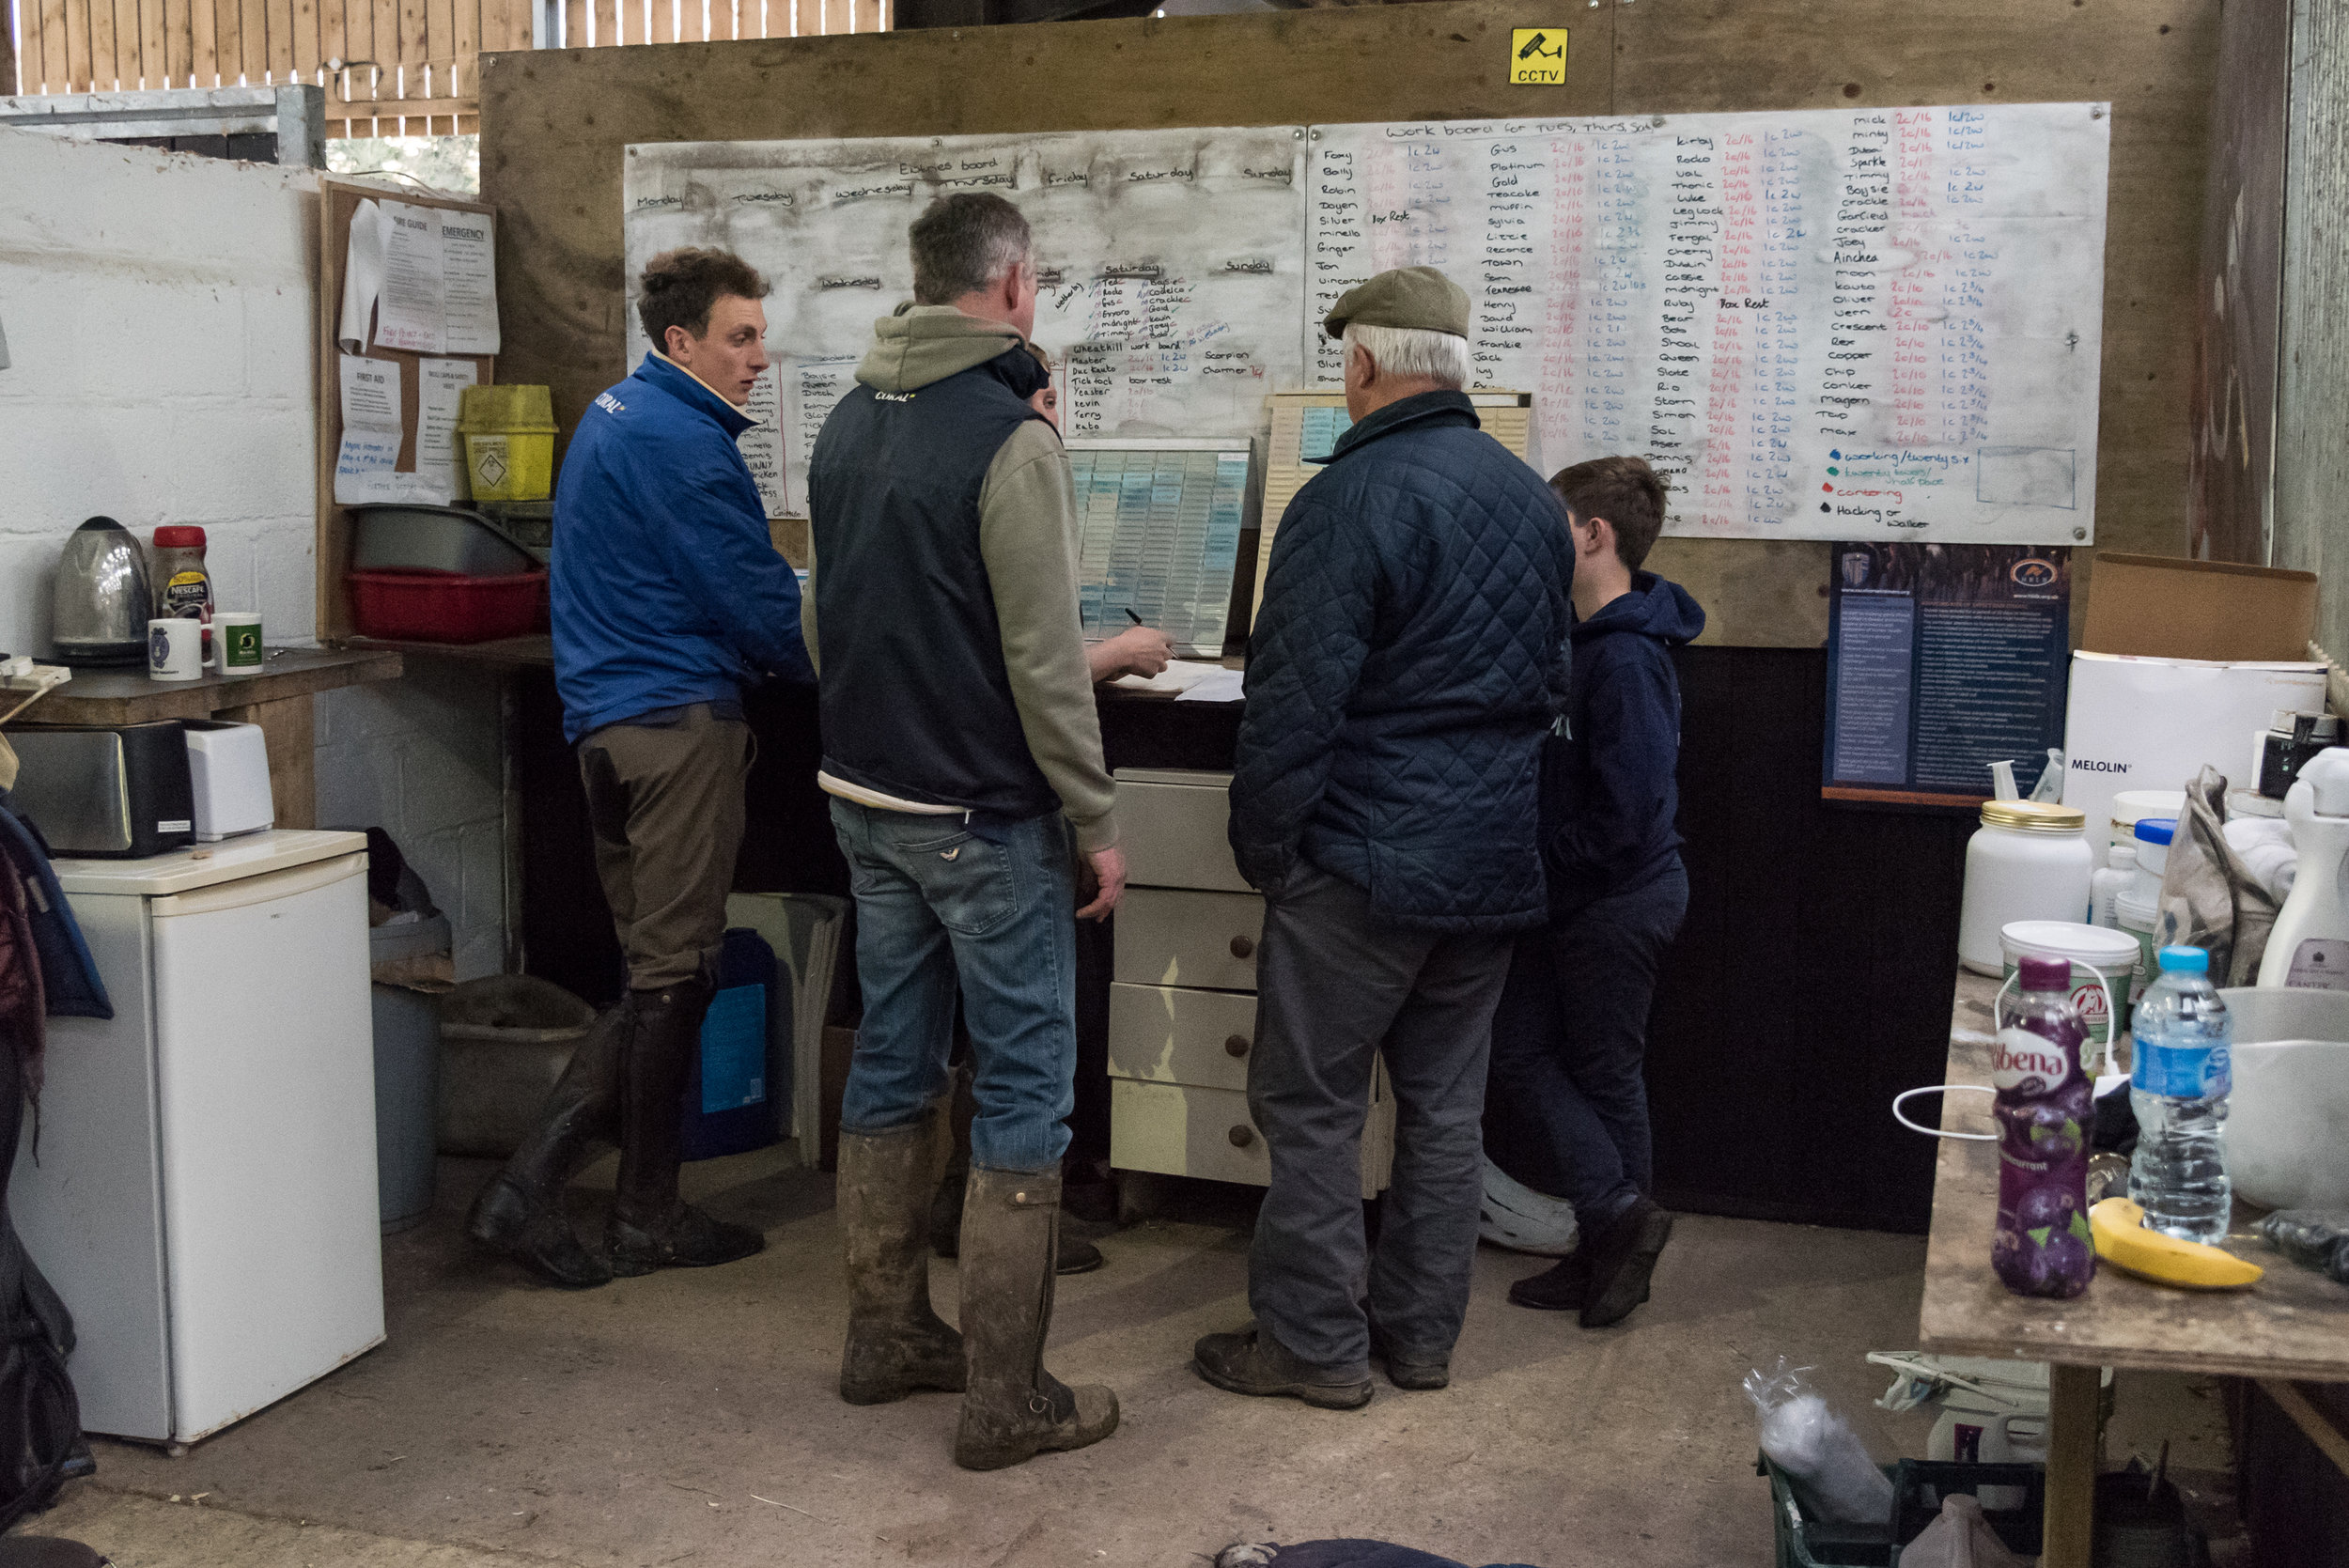 Three generations of the Tizzard family make plans for morning work.